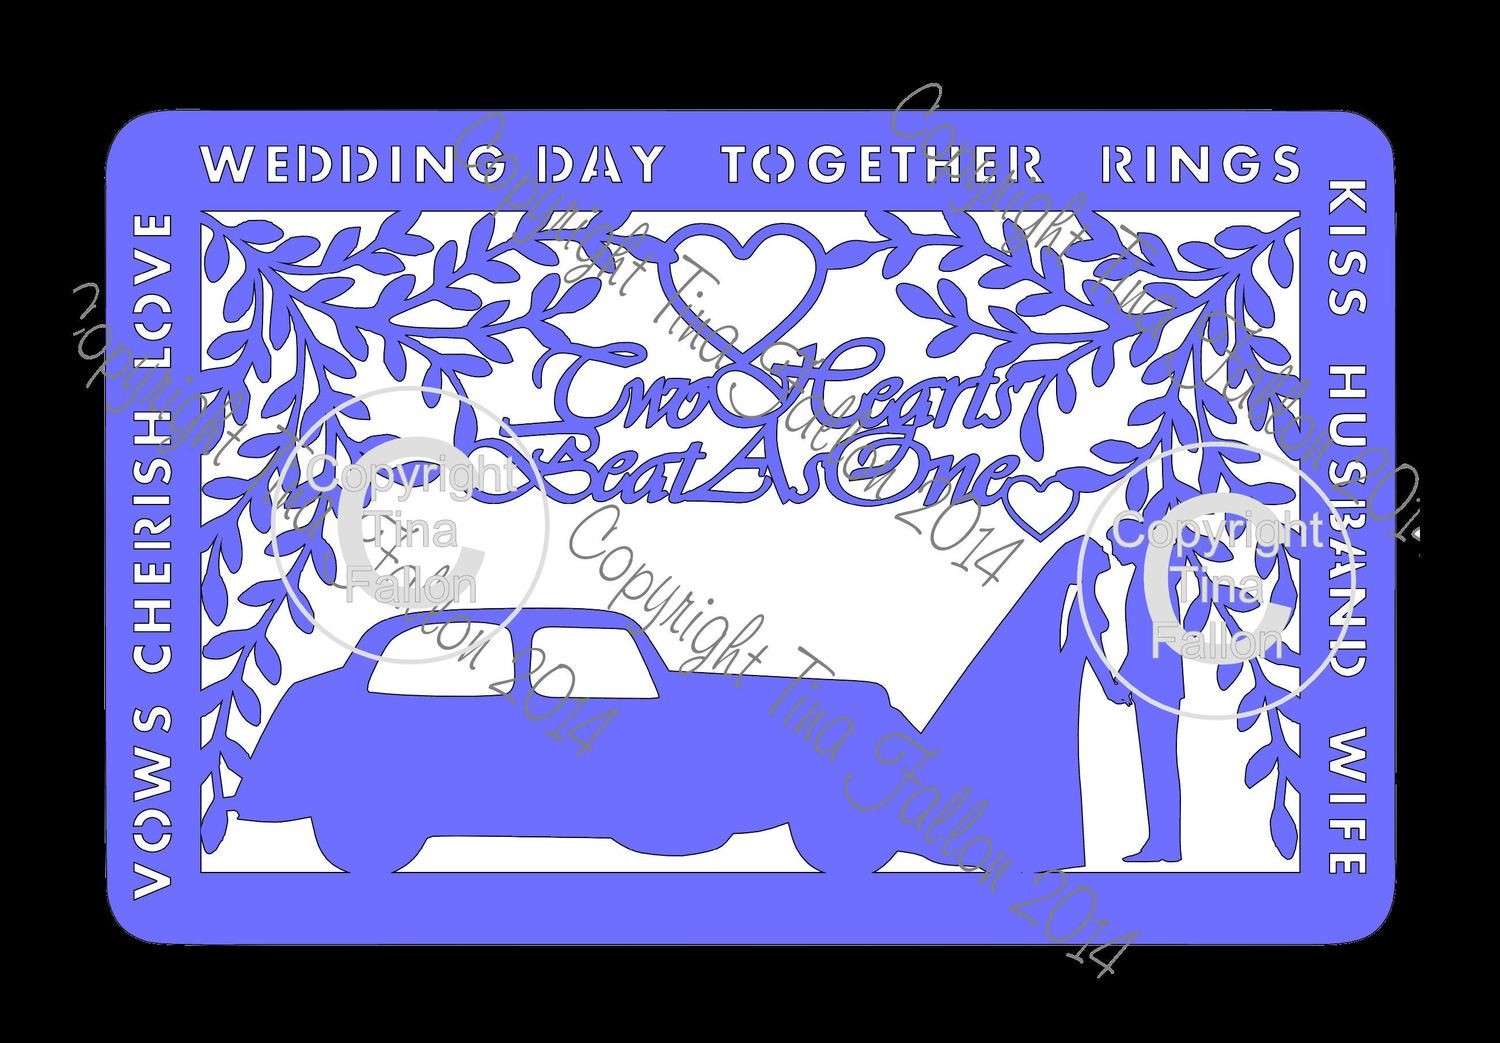 Wedding Day Frame No 2 with Car sized to approx A4